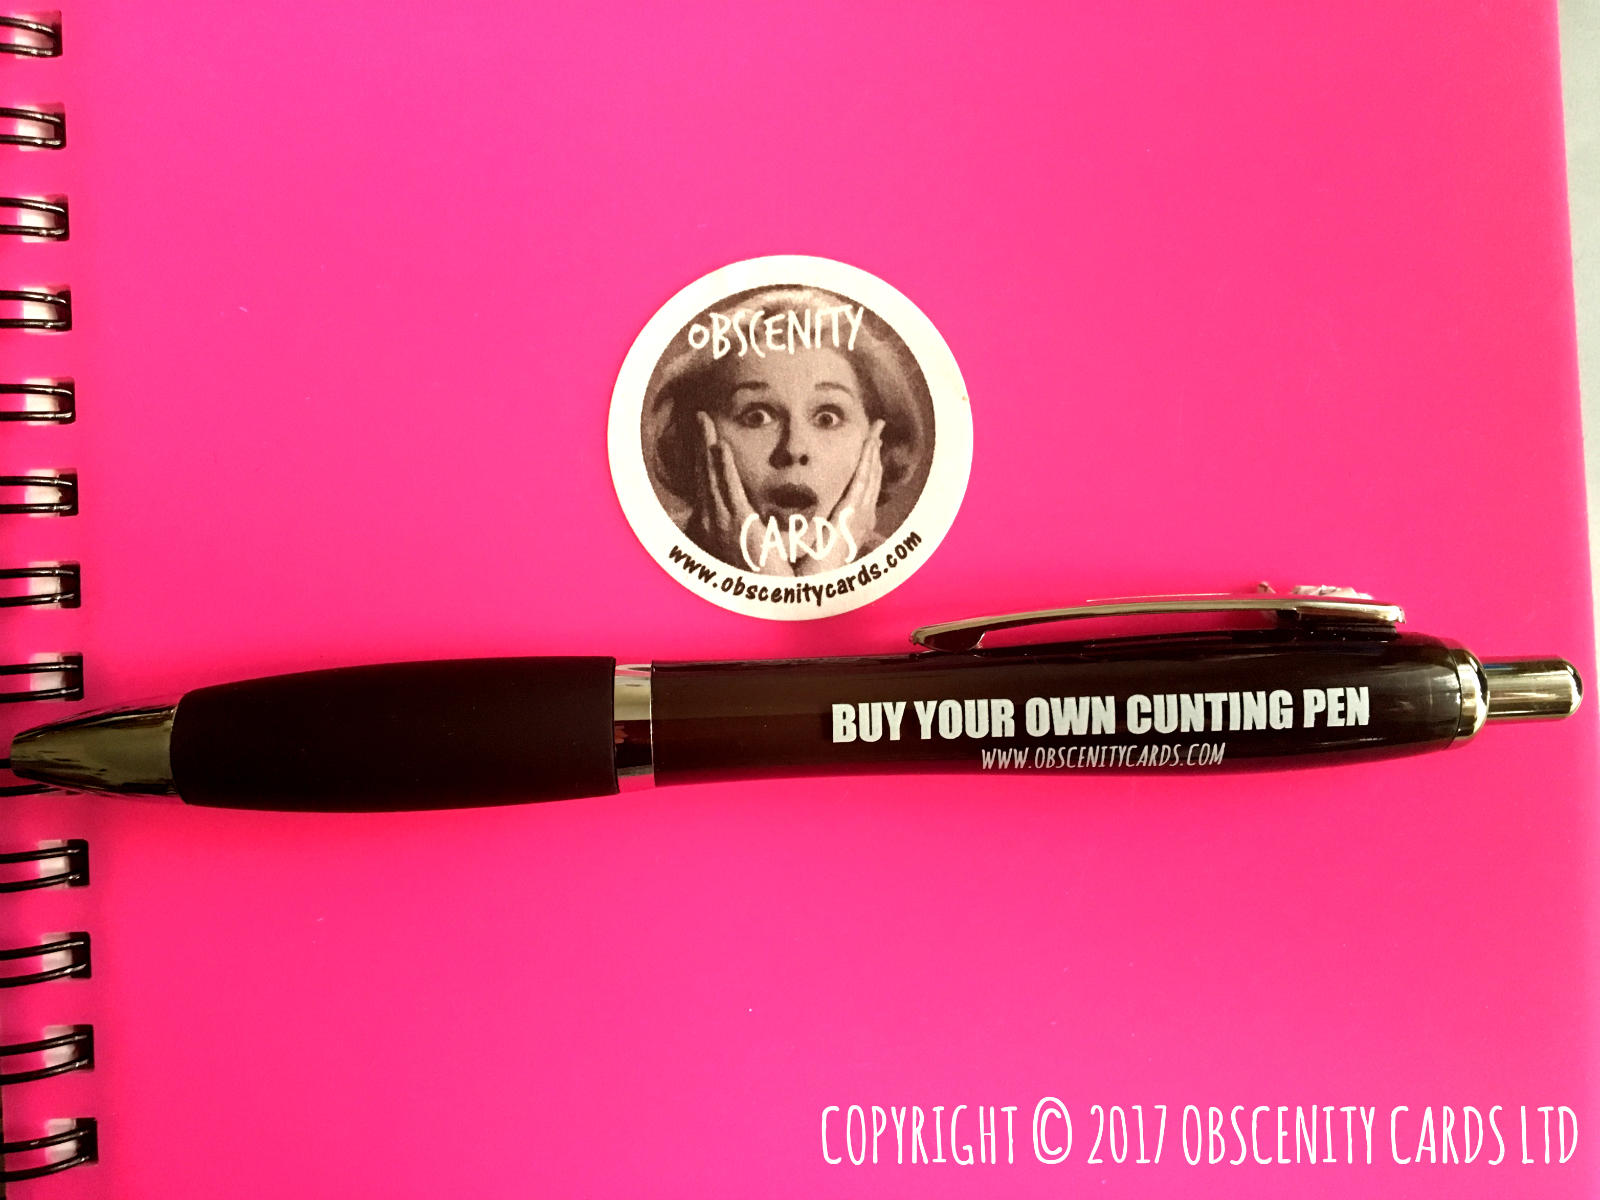 SWEARY PENS. Obscene funny offensive birthday cards by Obscenity cards. Obscene Funny Cards, Pens, Party Hats, Key rings, Magnets, Lighters & Loads More!